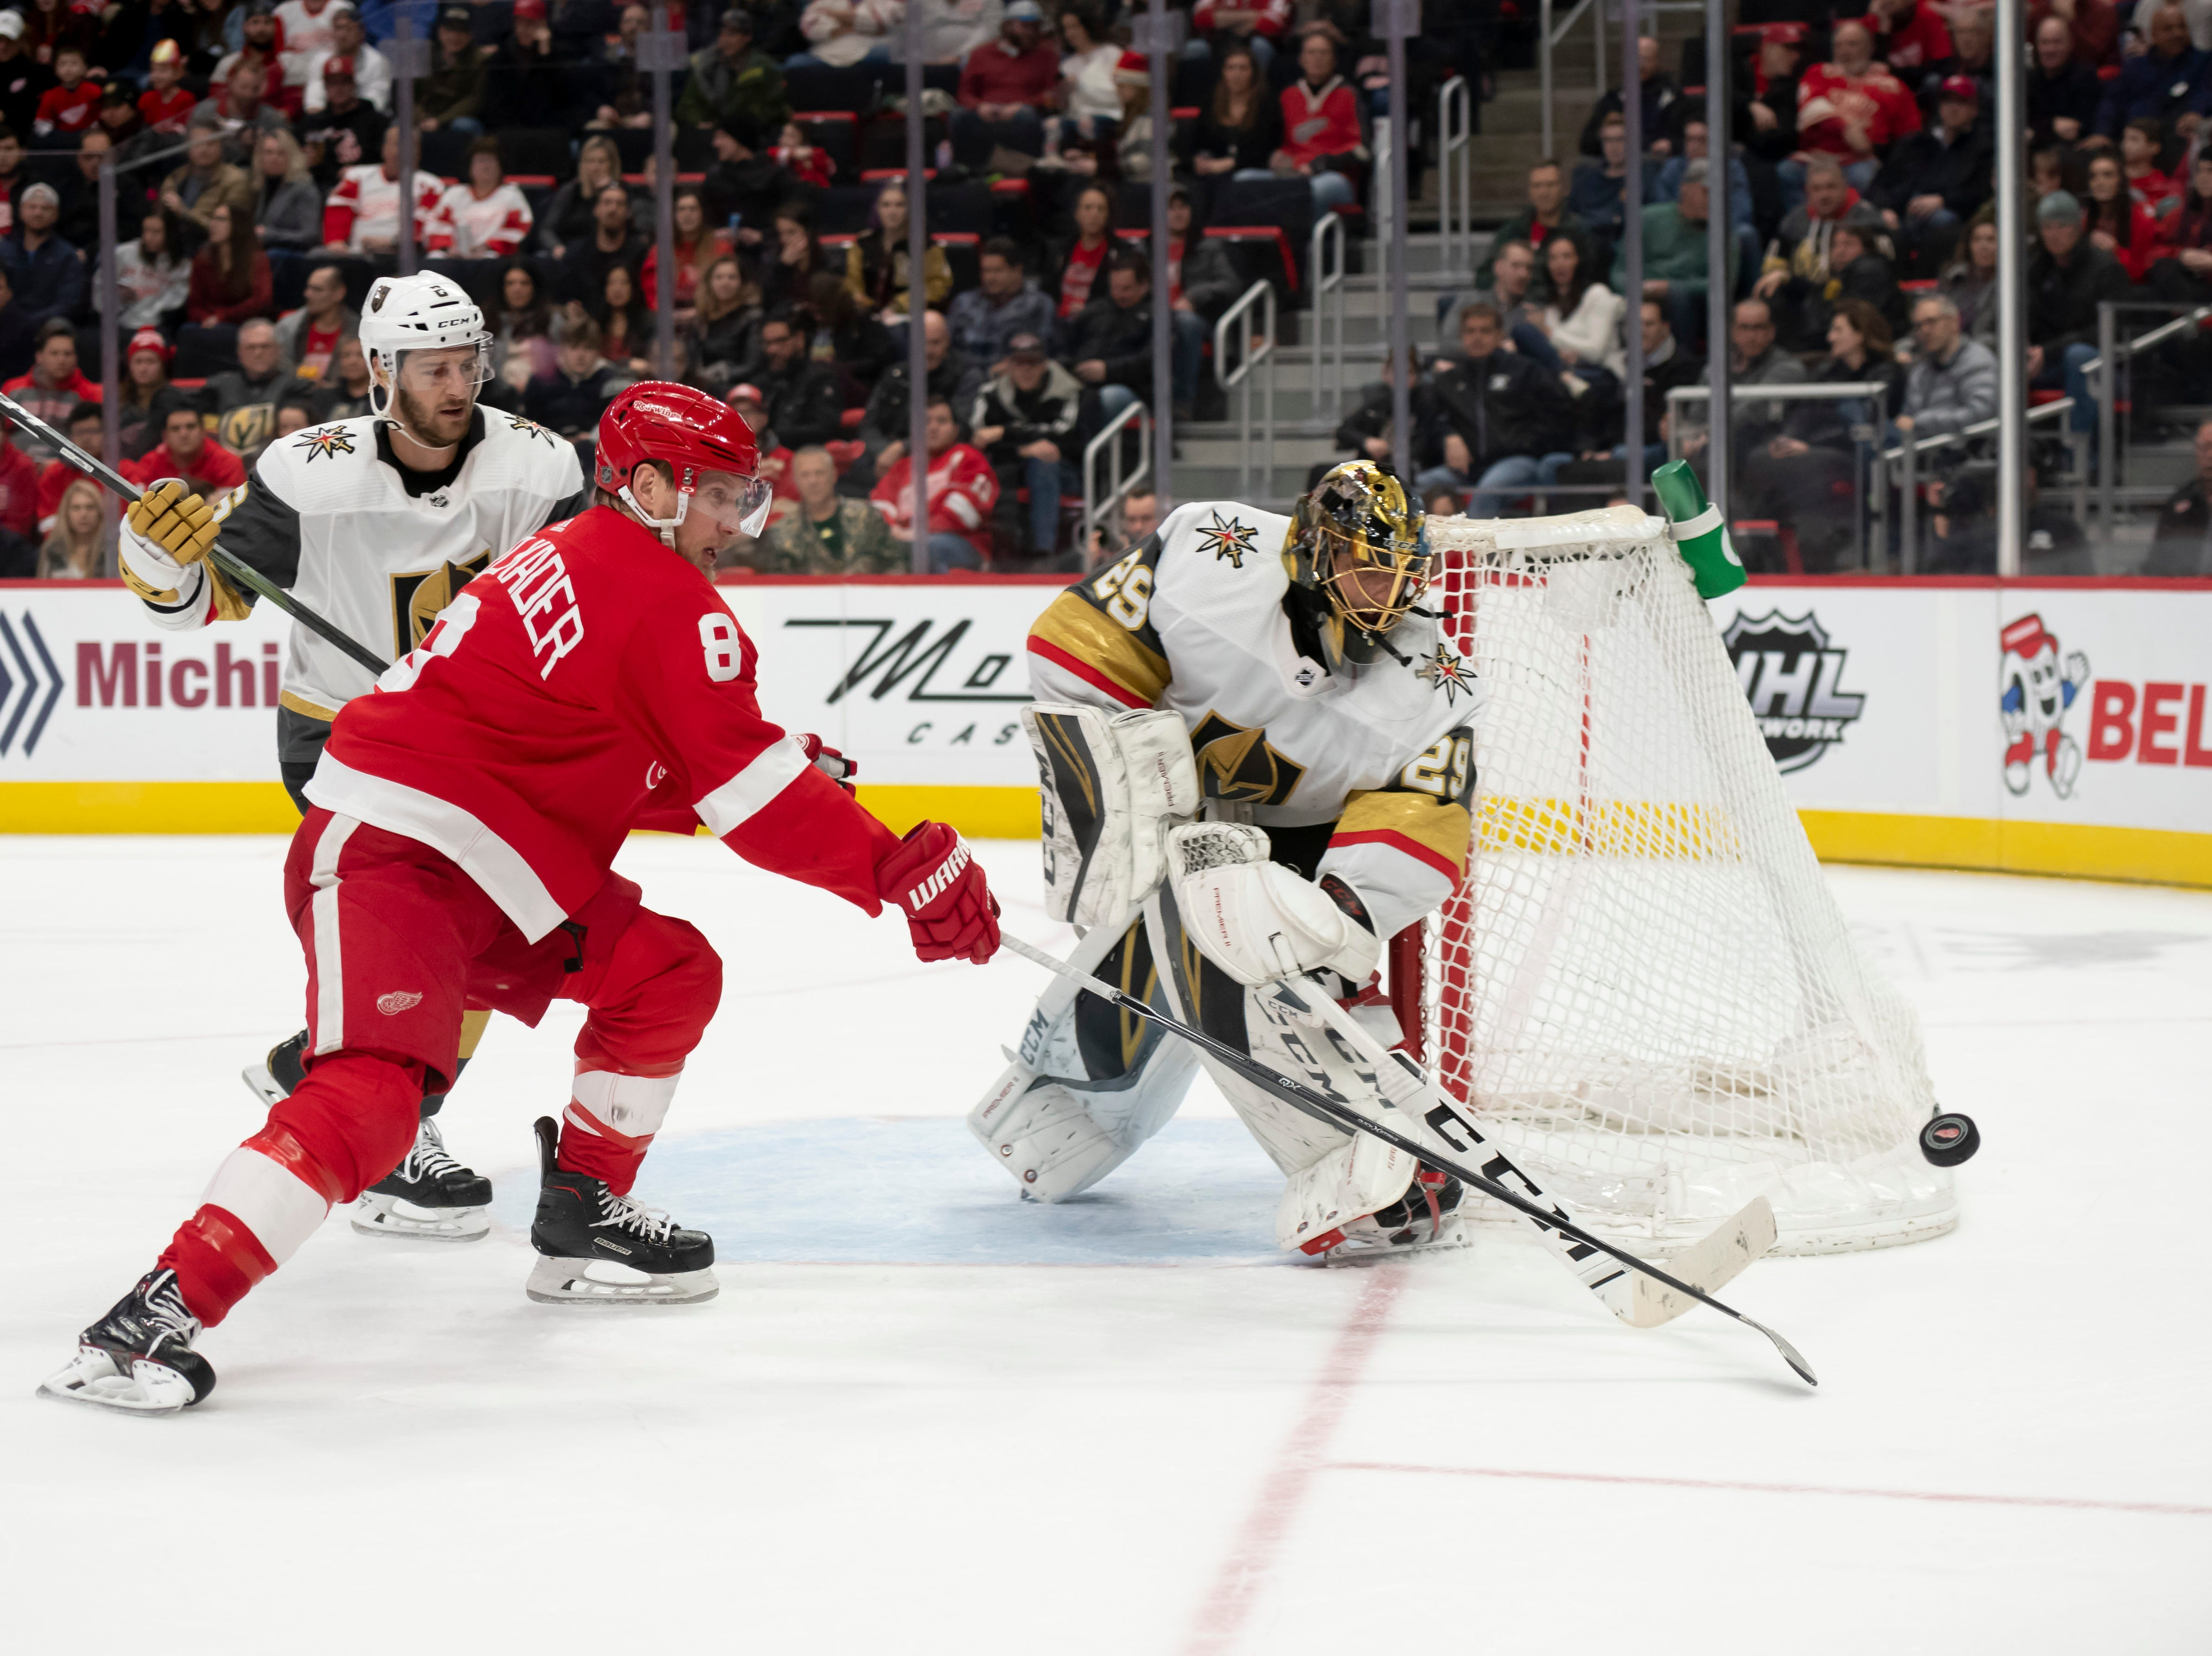 Vegas goaltender Marc-Andre Fleury flicks the puck away from Detroit left wing Justin Abdelkader  in the first period.